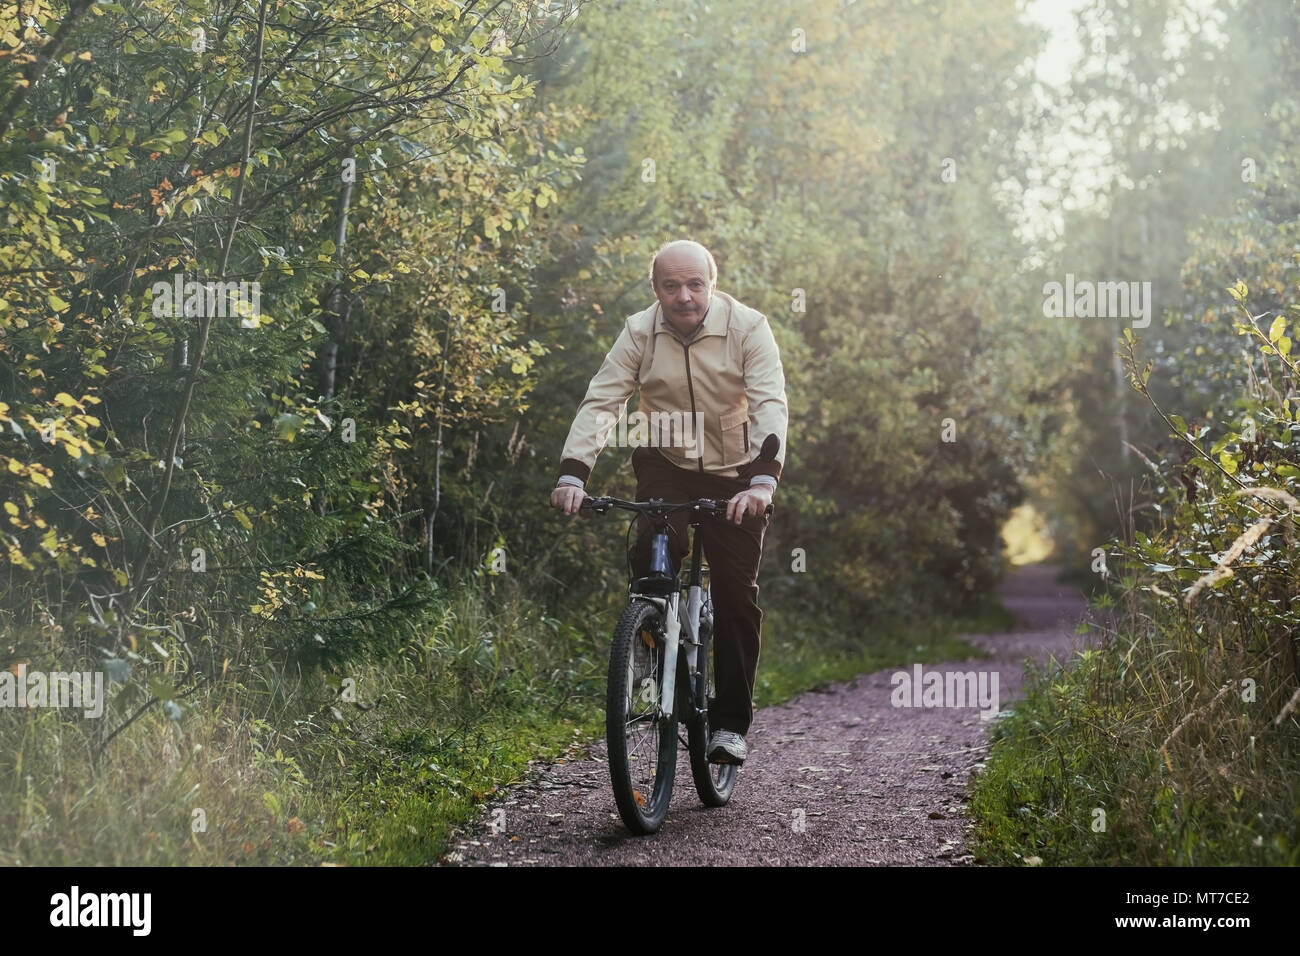 Portrait of man riding cycle in countryside. He is smiling a little - Stock Image